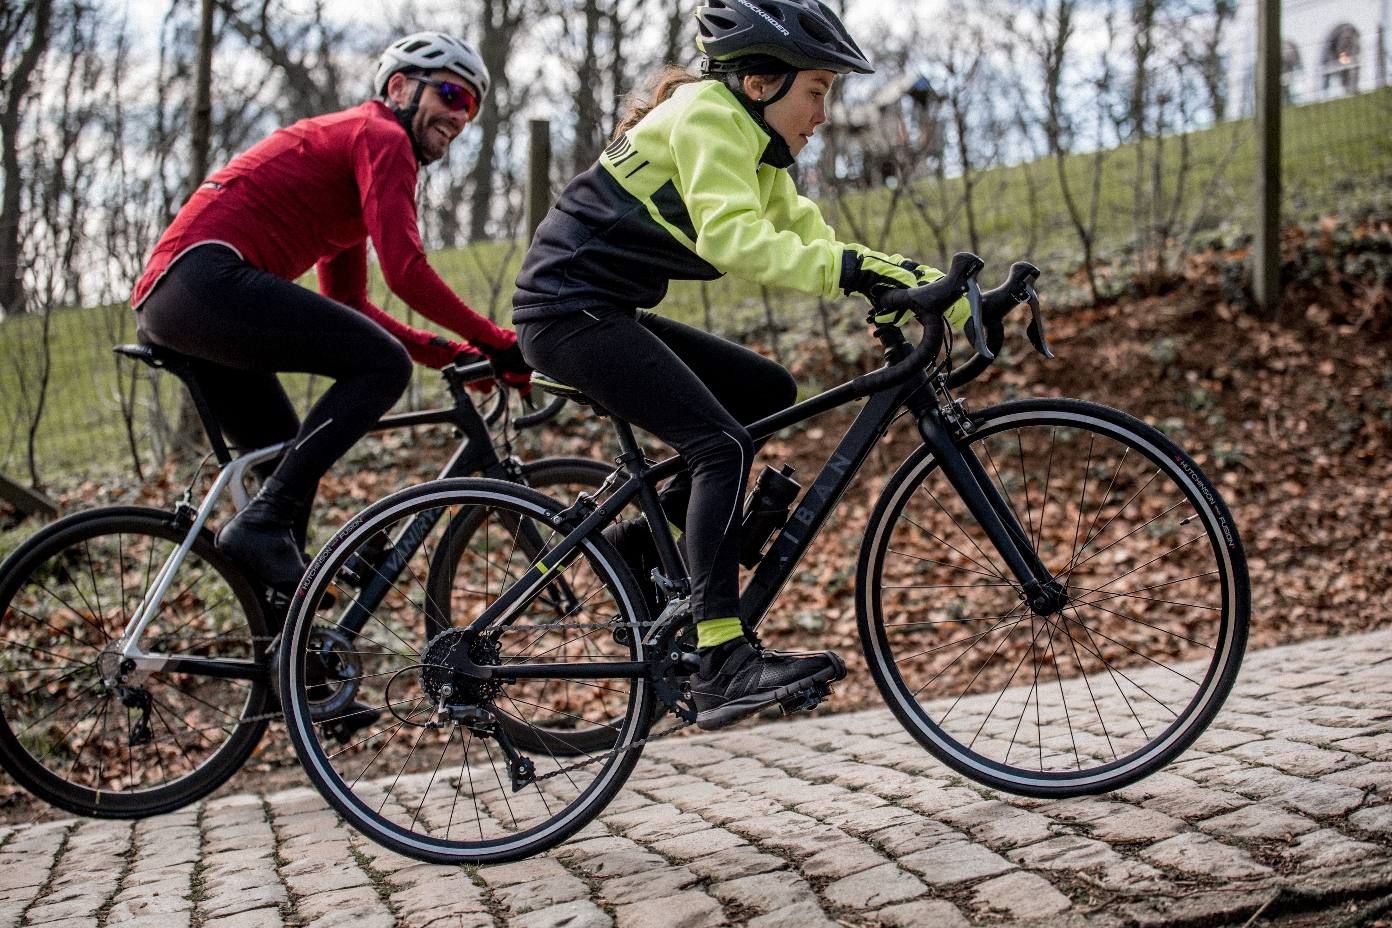 Btwin Velo Route 9-12ans Triban500jr - 000 --- Expires On 10-03-2024_resize_89.jpg